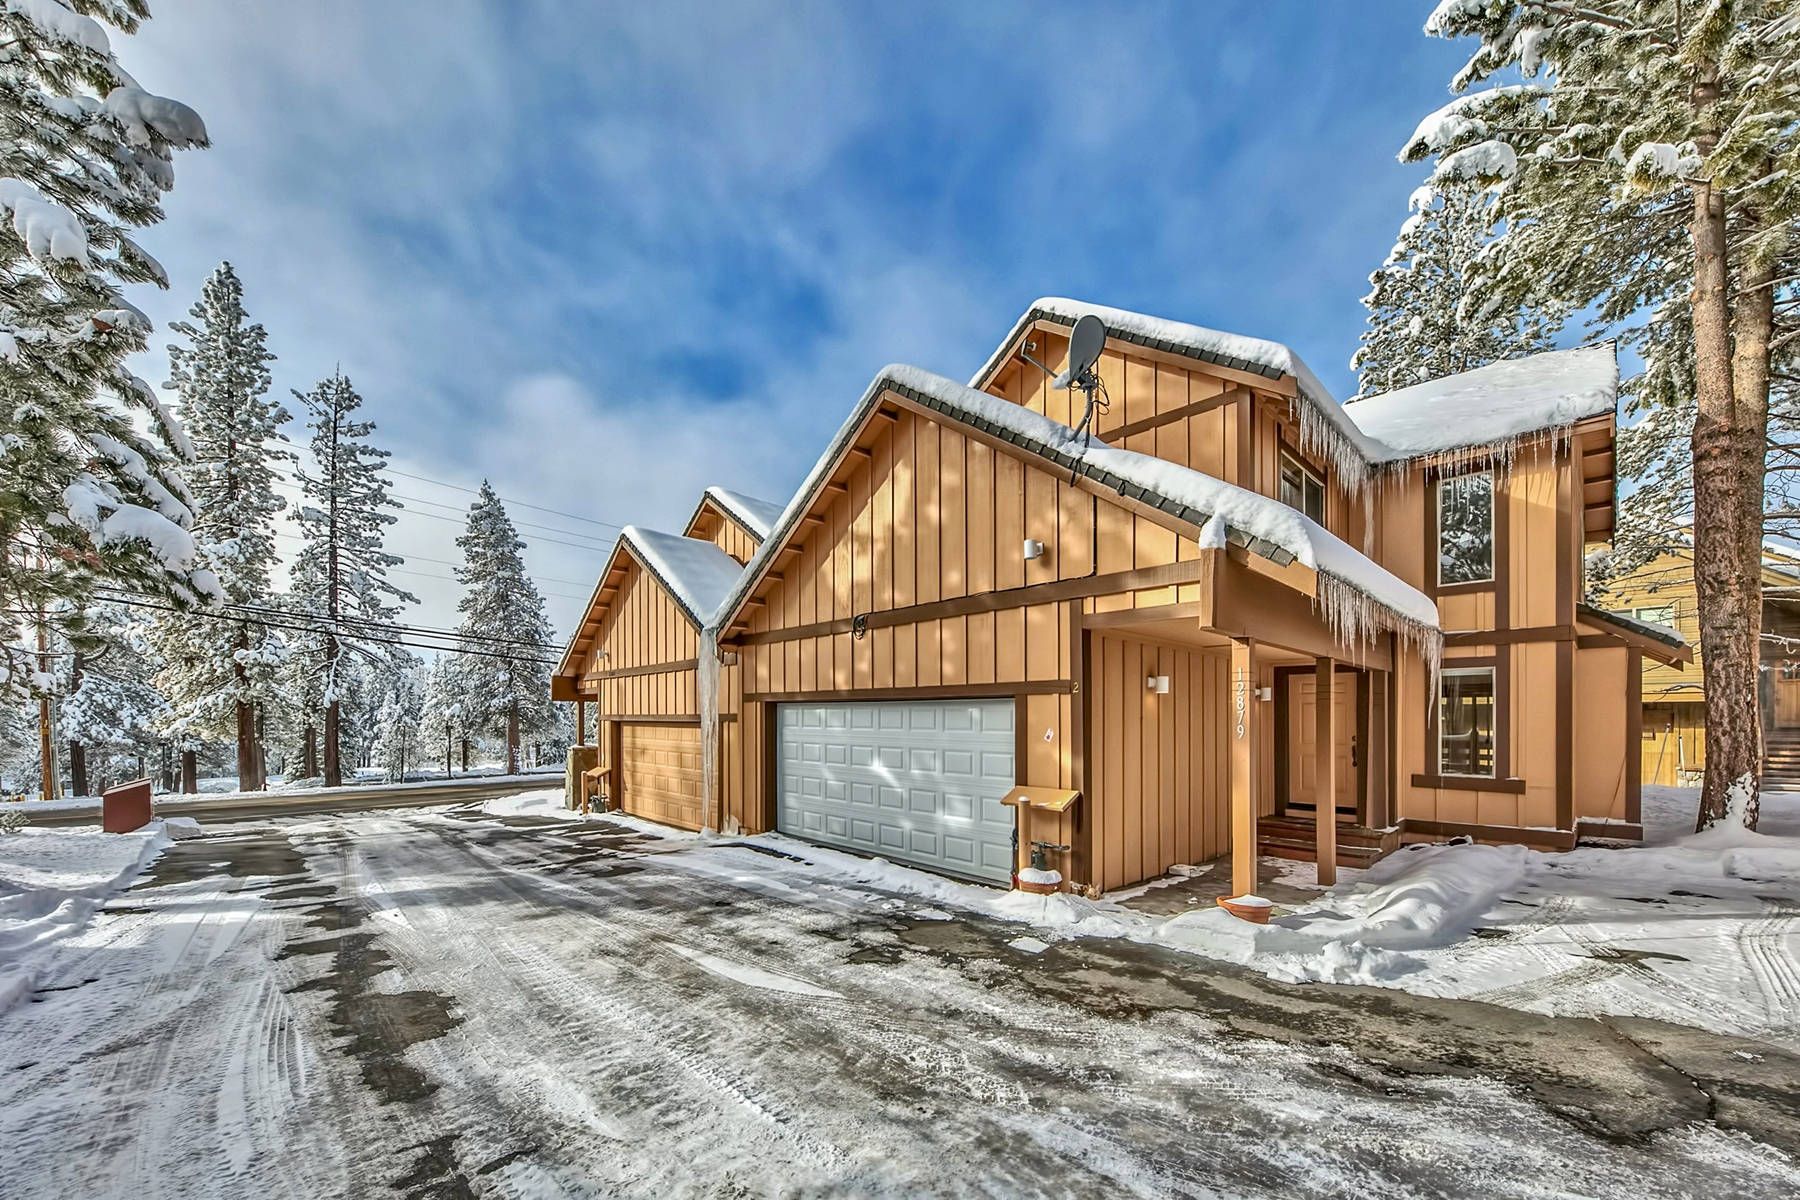 Condominium for Active at 12879 Northwoods Blvd, Truckee, Ca 96161 12879 Northwoods Blvd. Truckee, California 96161 United States